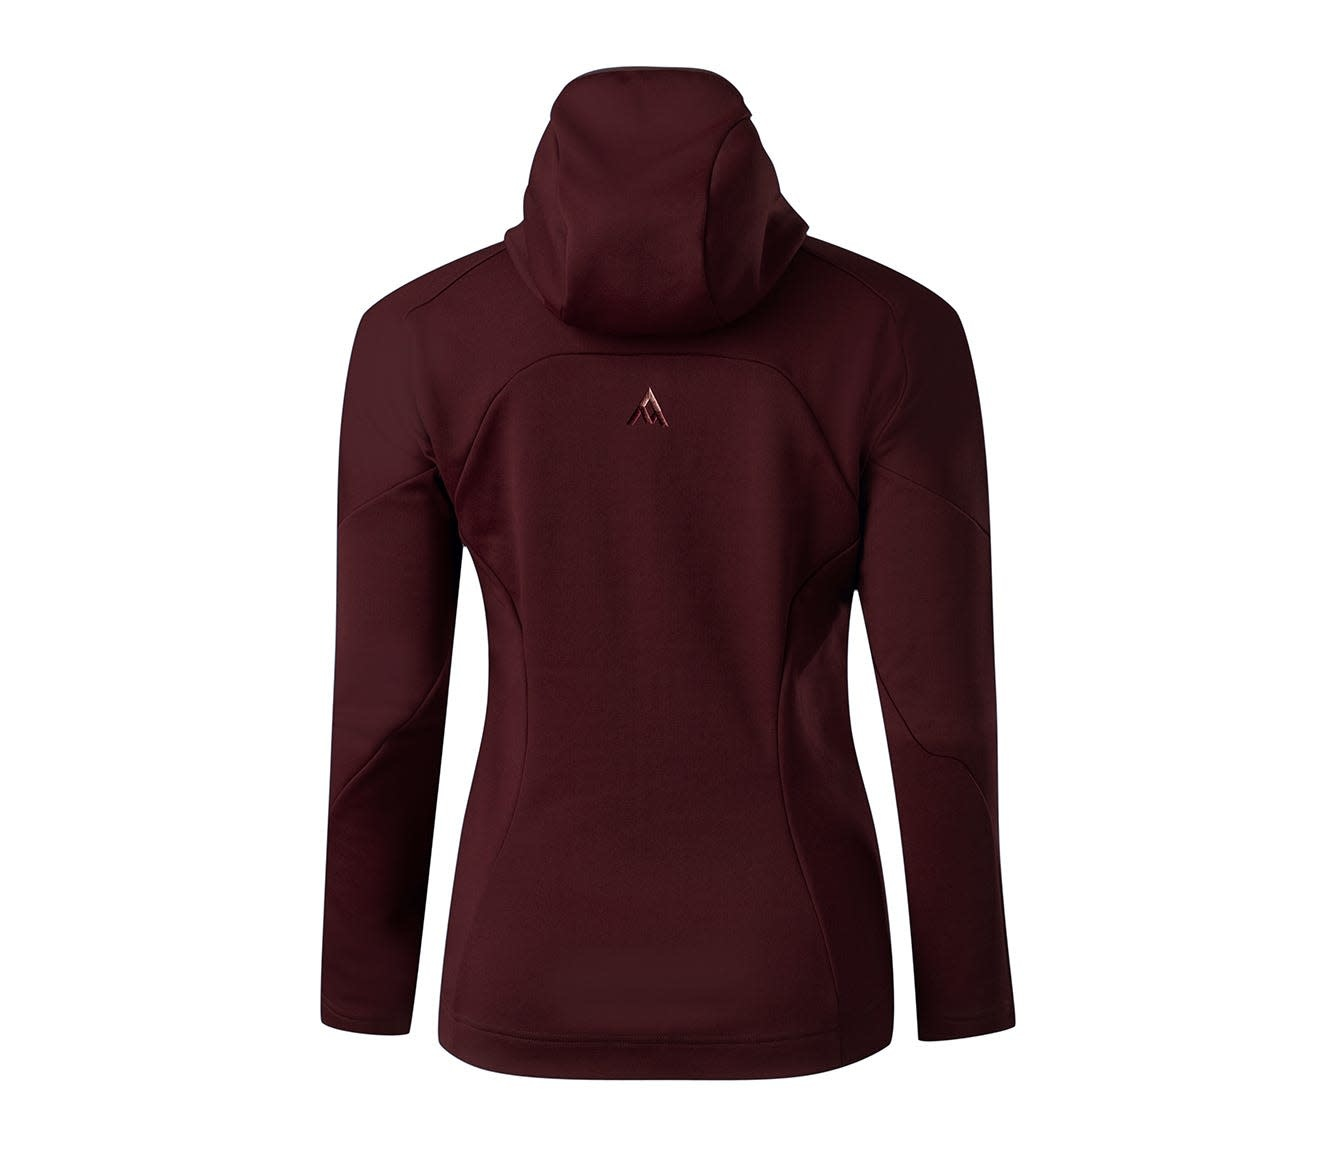 7 Mesh, Callaghan Hoody, Women's, Death Plum (LG)